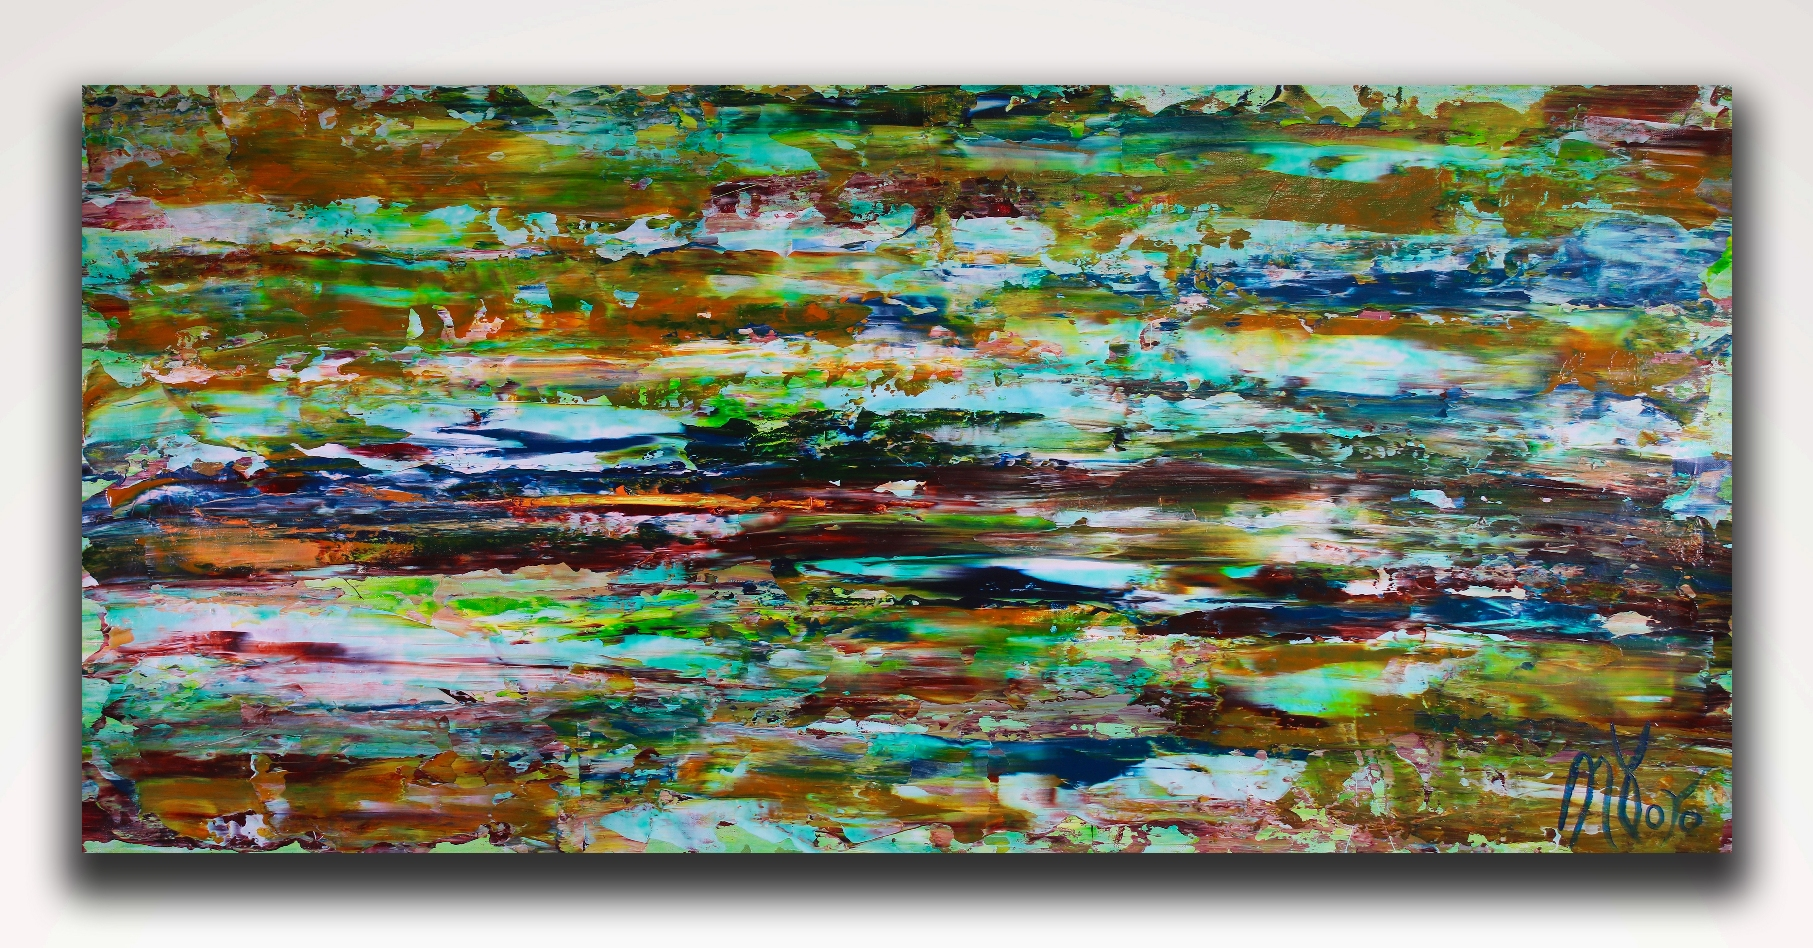 Earthy Spectra (2018) abstract art Acrylic painting by Nestor Toro